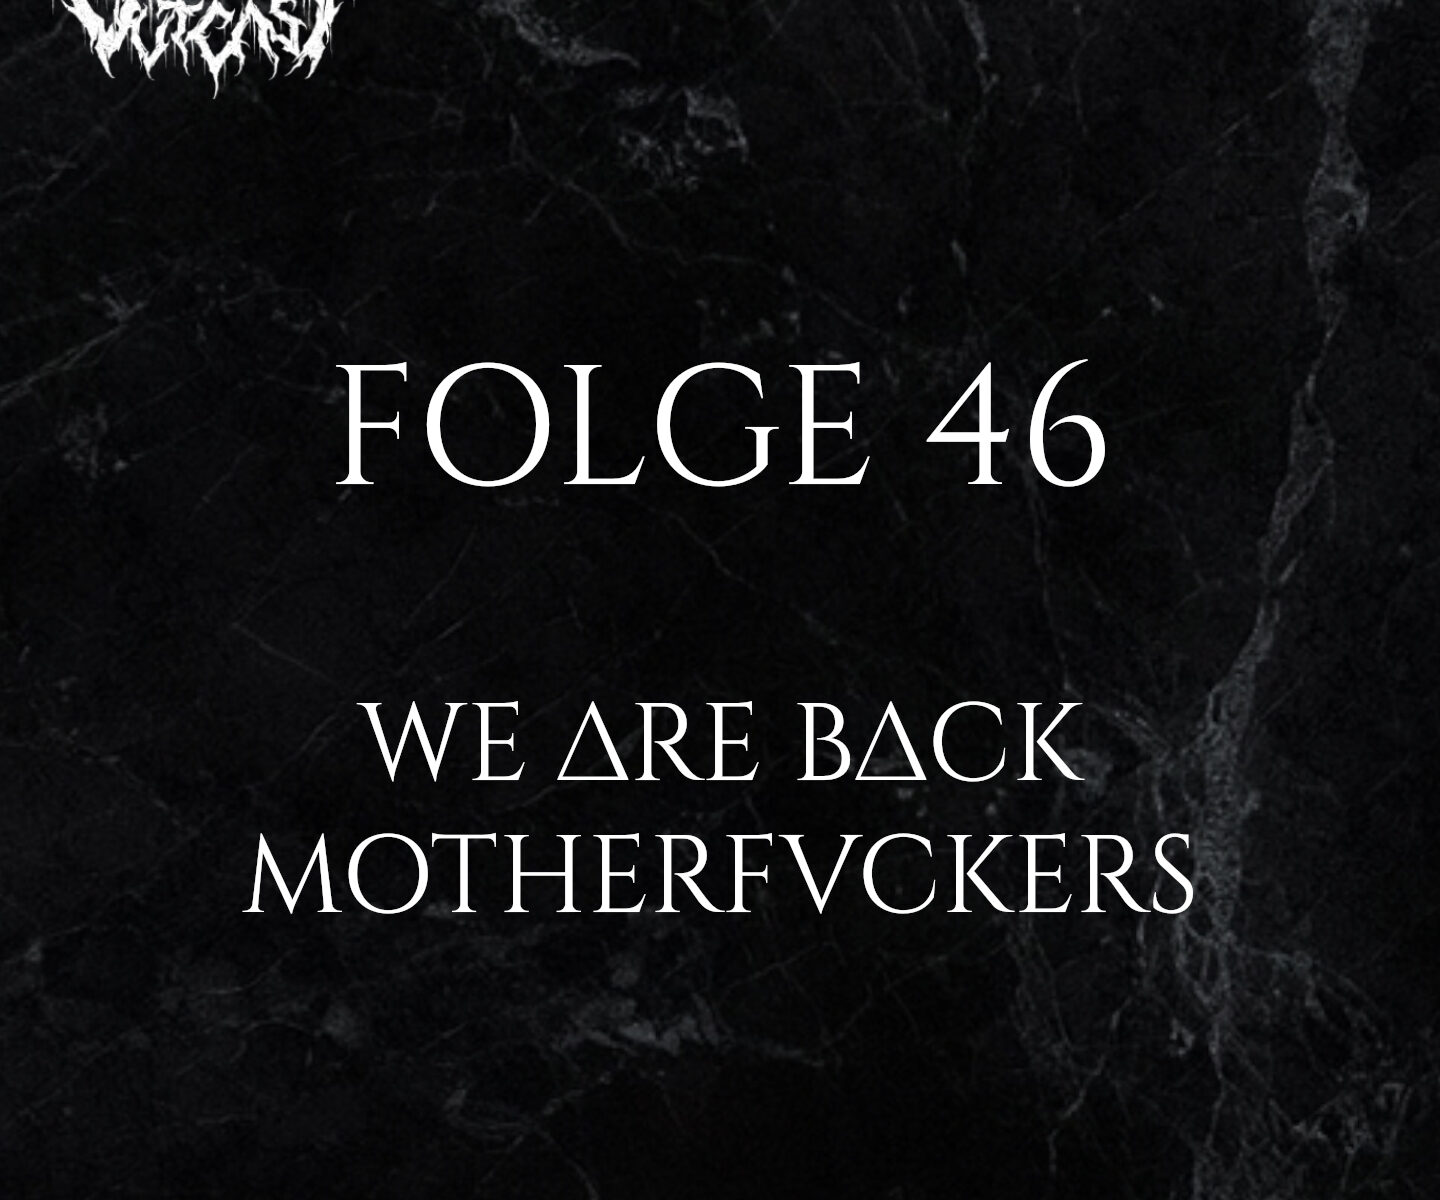 Folge 46 We Are Back Motherfvckers